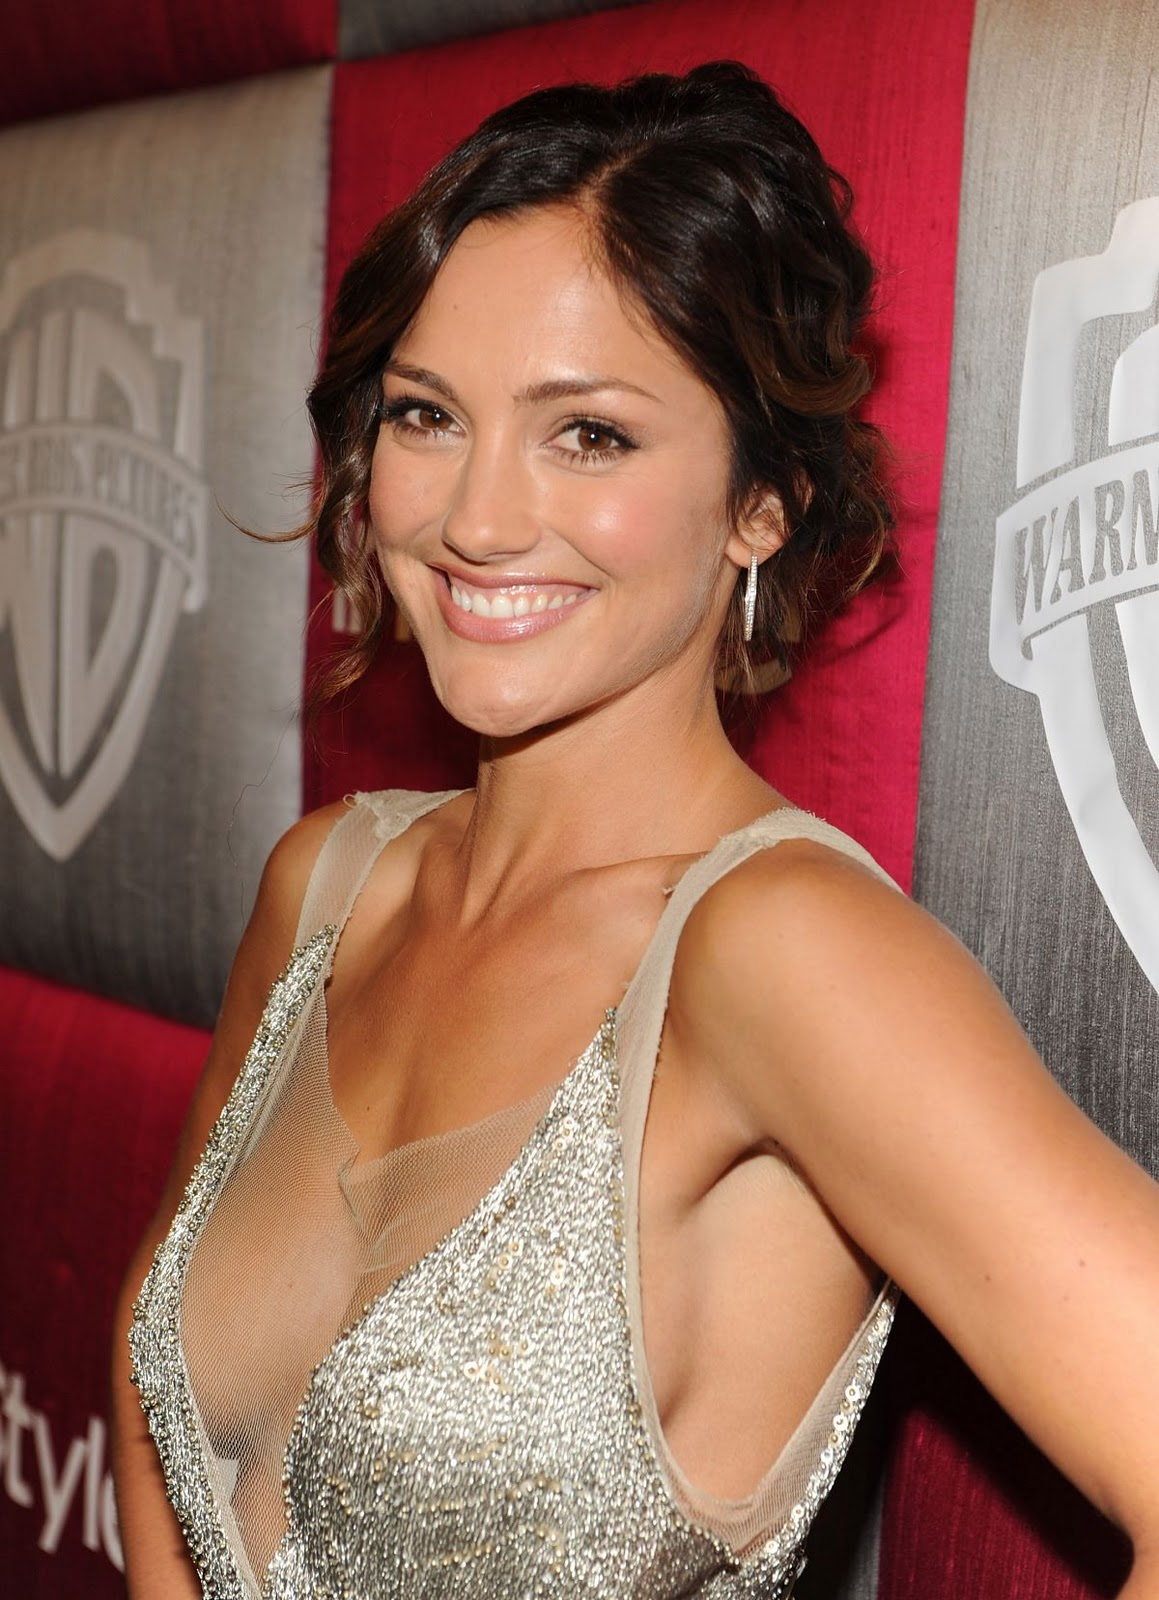 Hacked Minka Kelly nudes (11 foto and video), Pussy, Cleavage, Feet, braless 2018